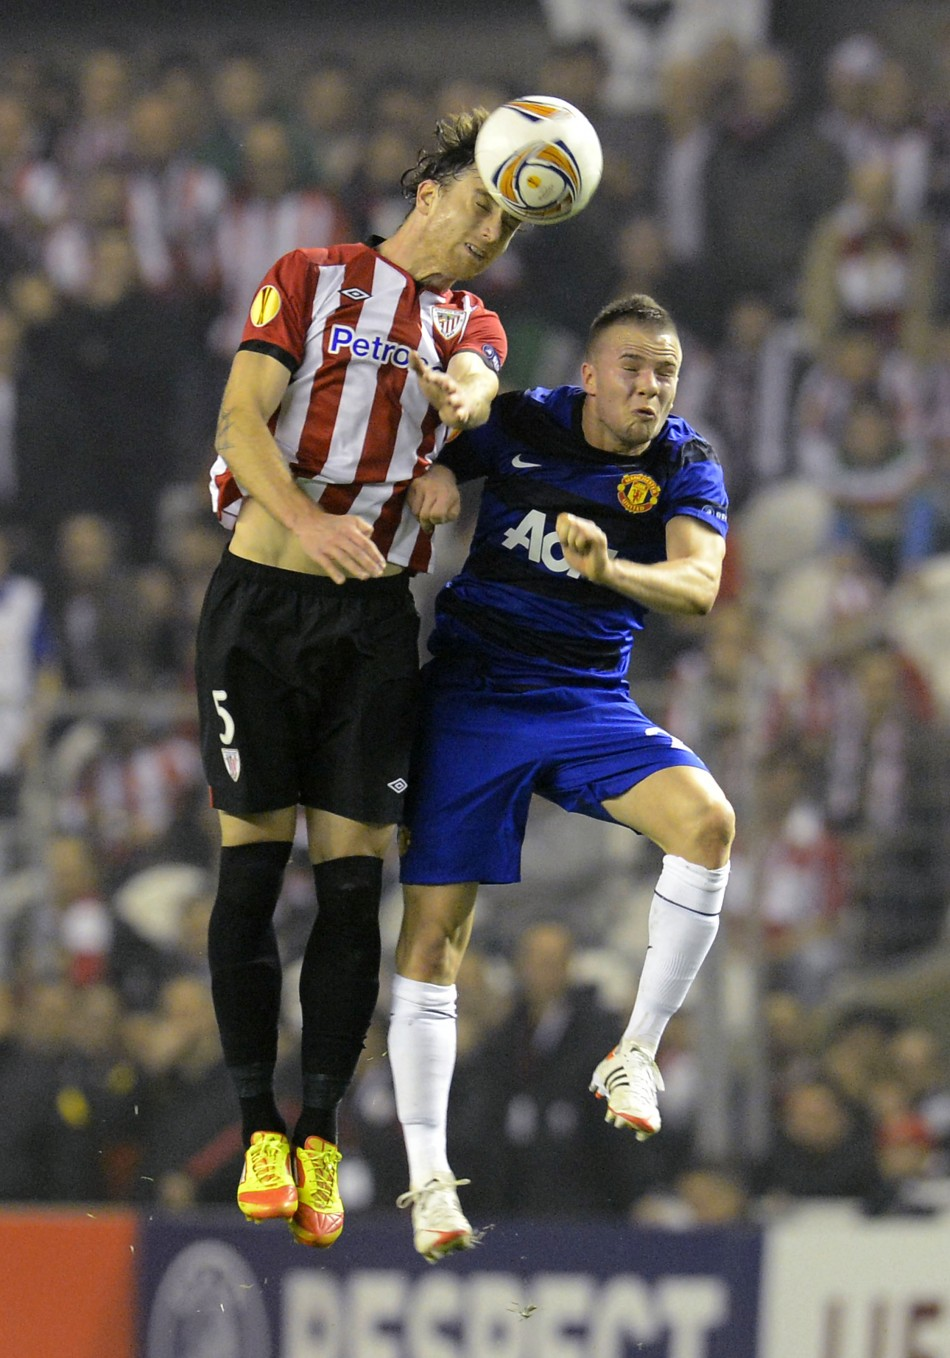 Soccer - Europa League - Round of Sixteen - Second Leg - Manchester United v Athletic Bilbao - San Mames